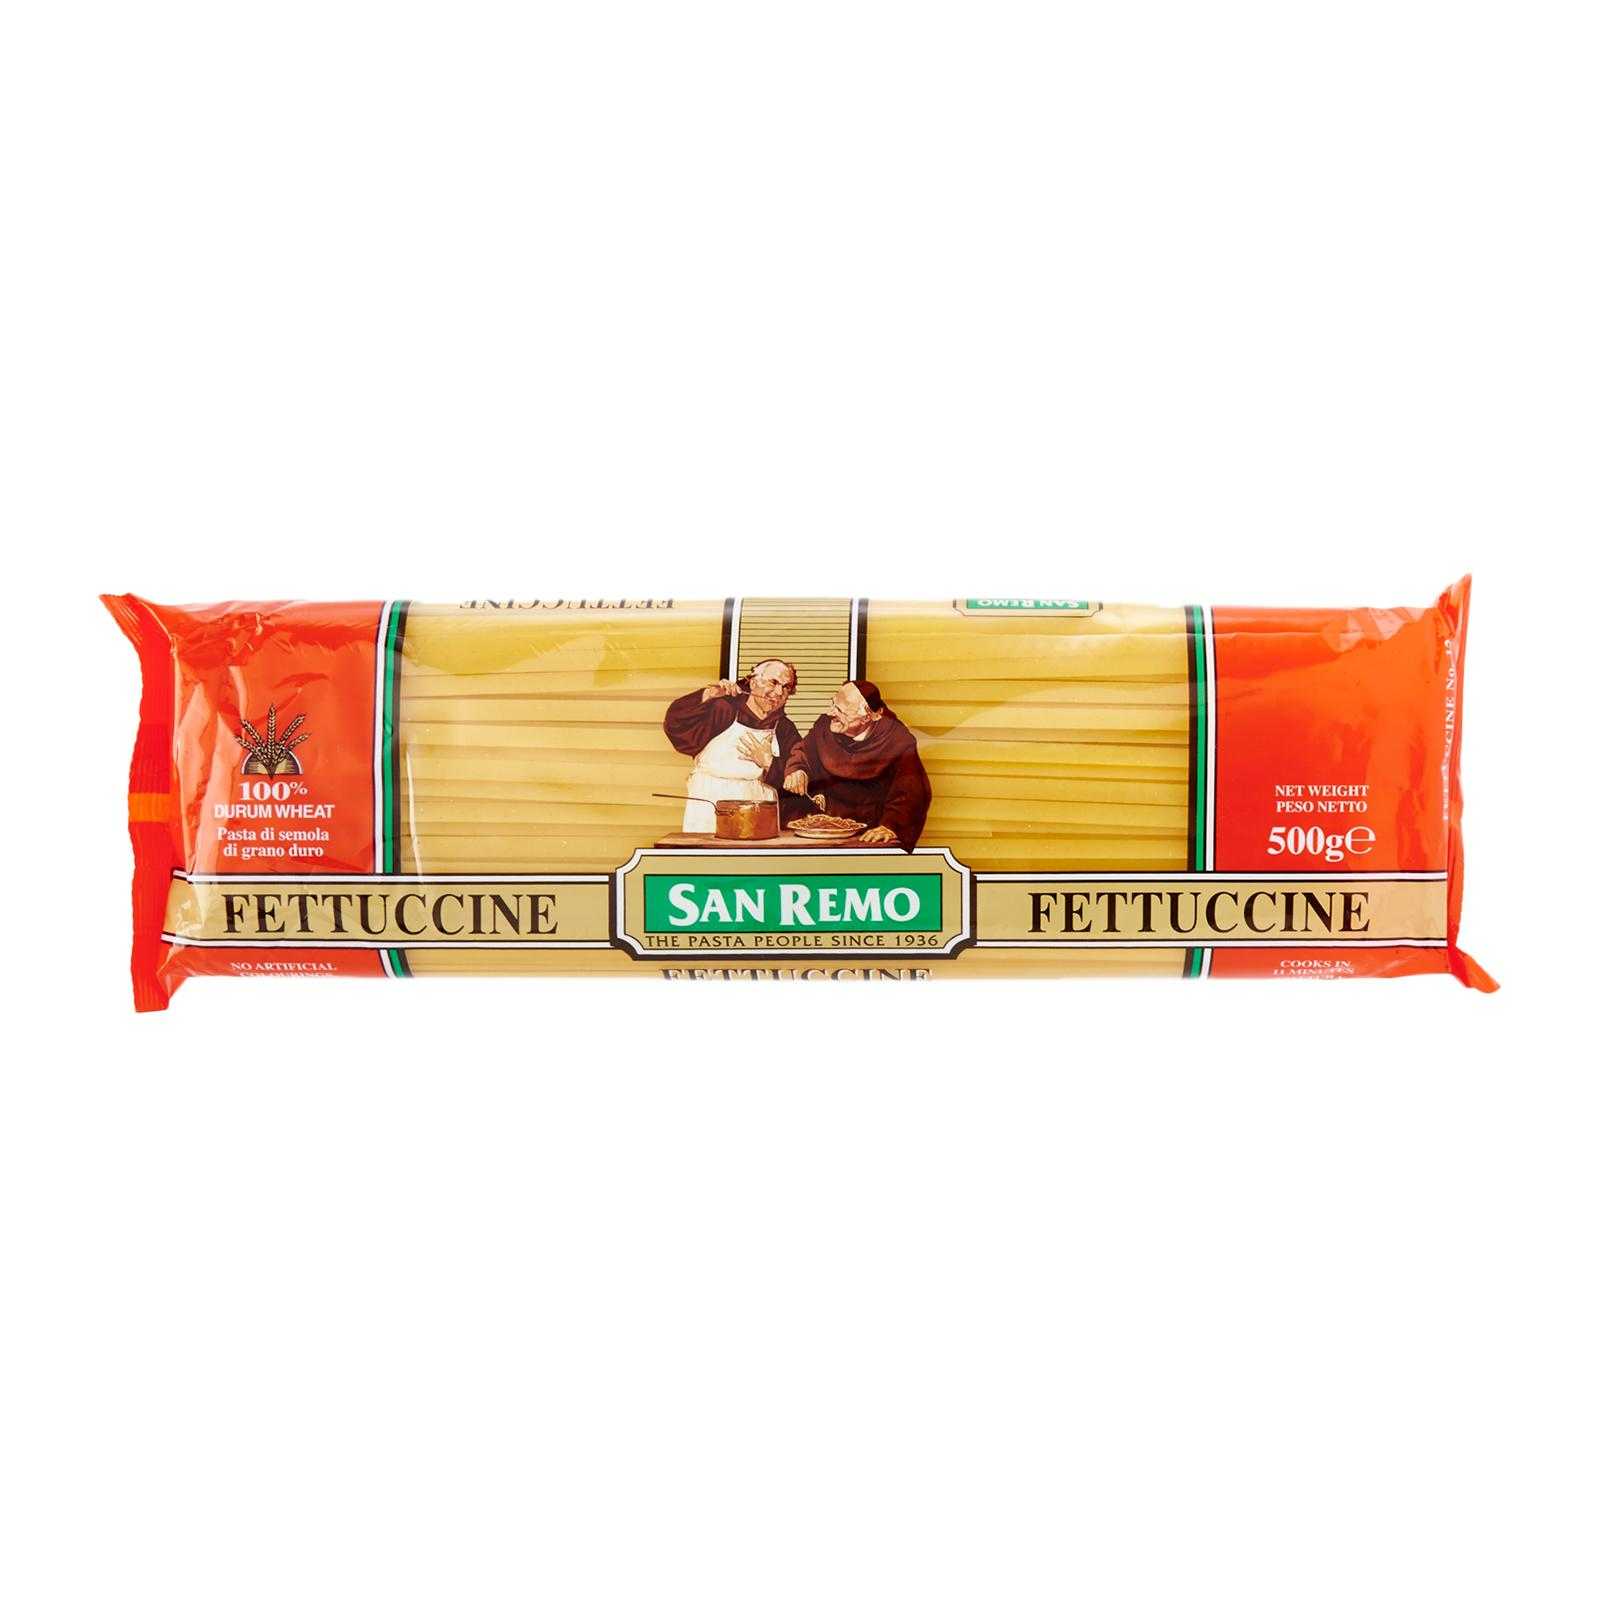 San Remo Fettuccine No. 12 By Redmart.